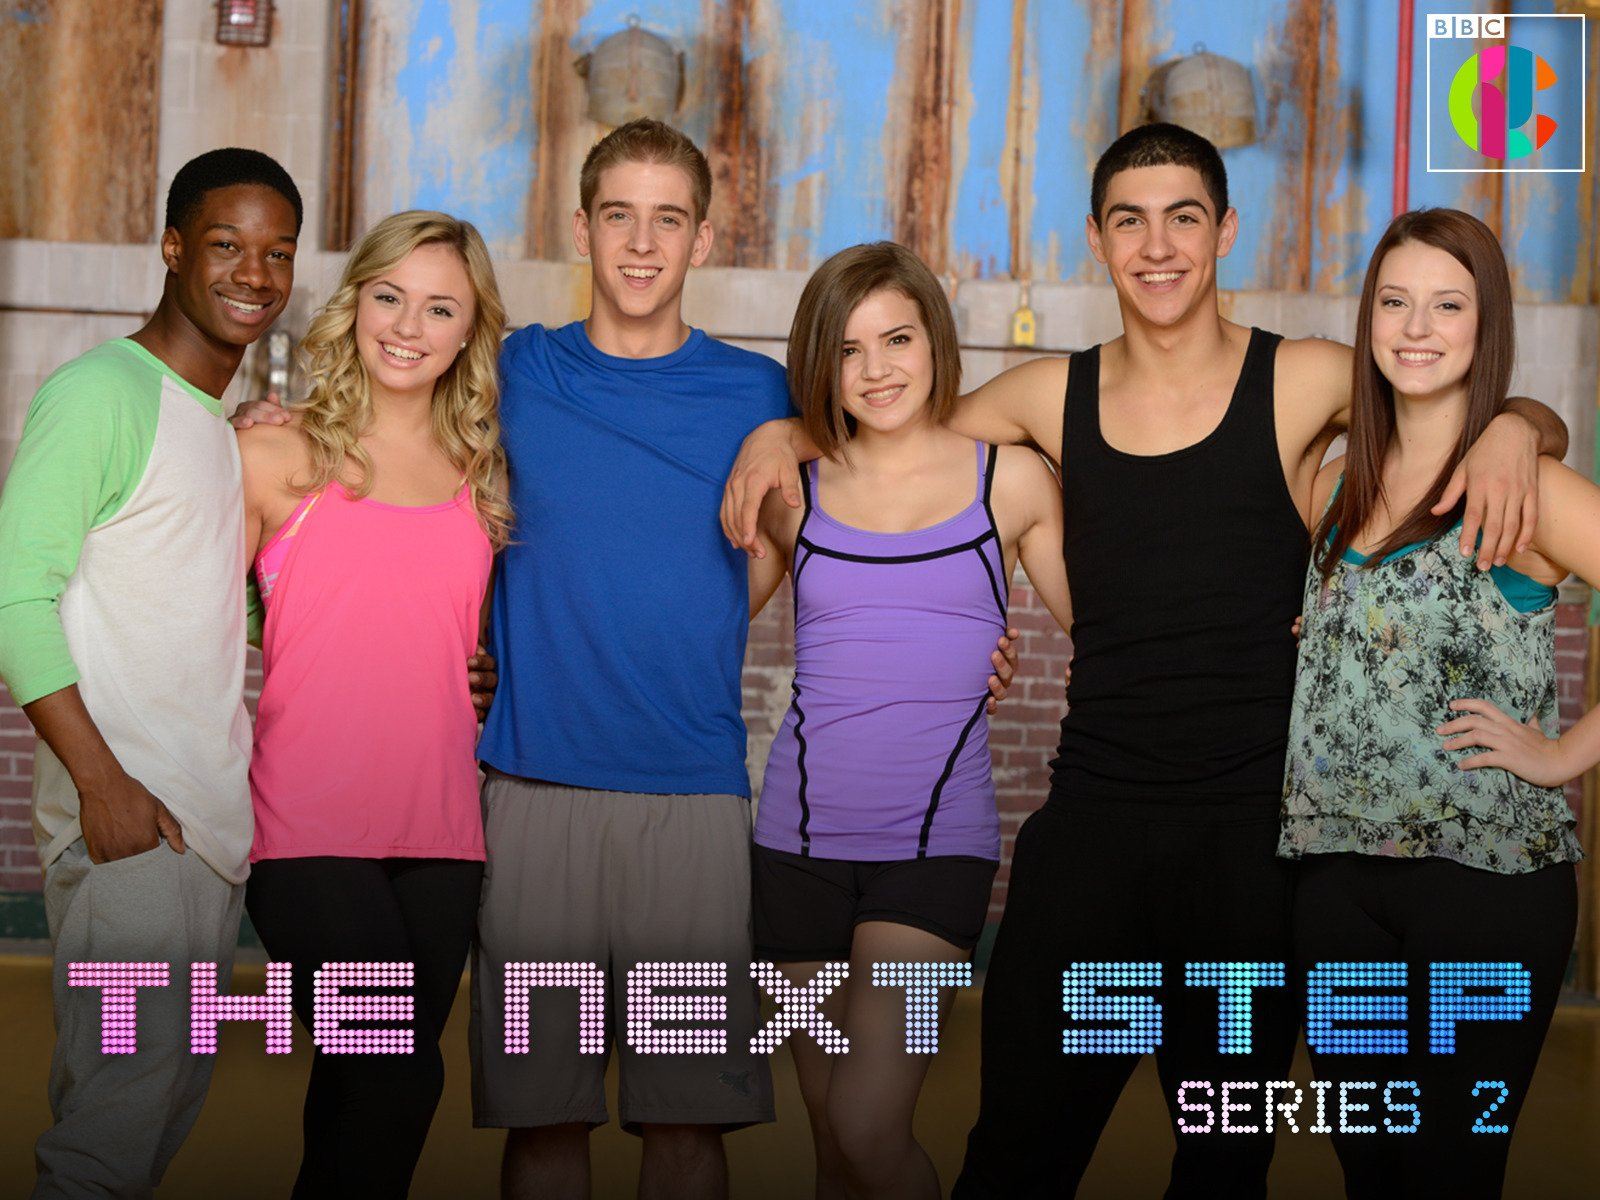 The Next Step, Season 2 - Season 2